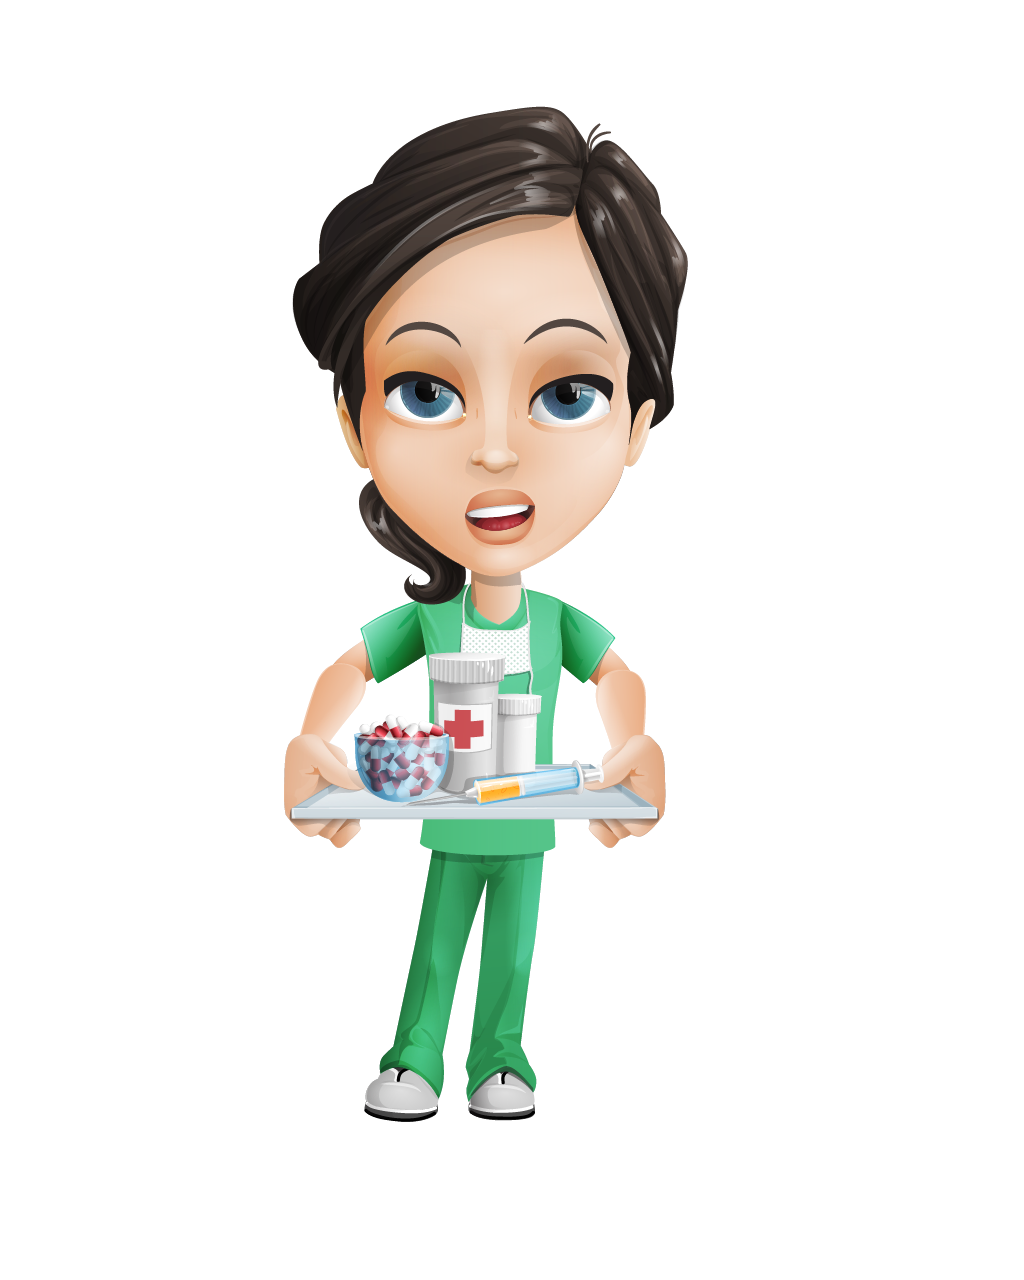 Moving clipart doctor. Drbeeneducation author at drbeen